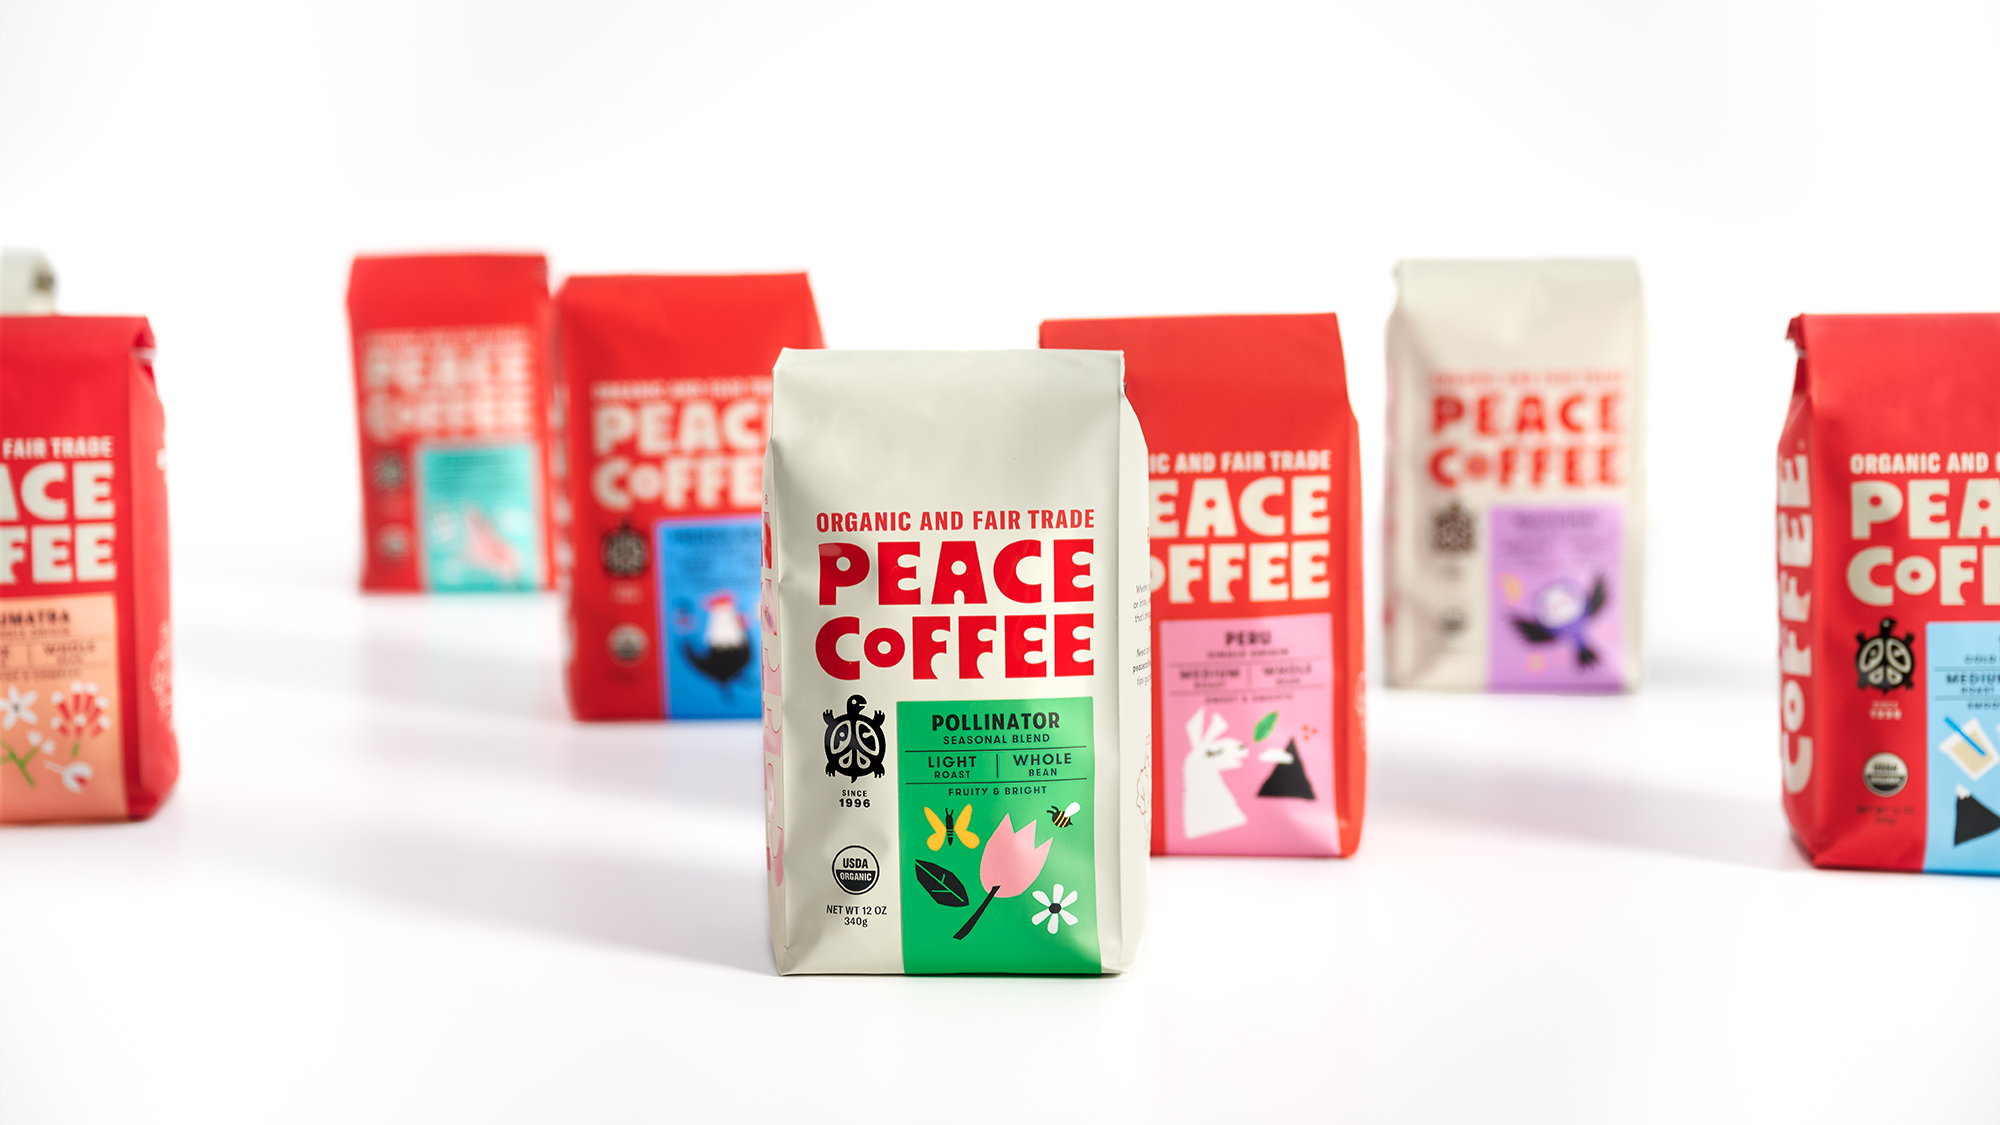 Seasonal and limited edition coffees get a cream-colored bag to distinguish them from Peace Coffee's standard lineup.